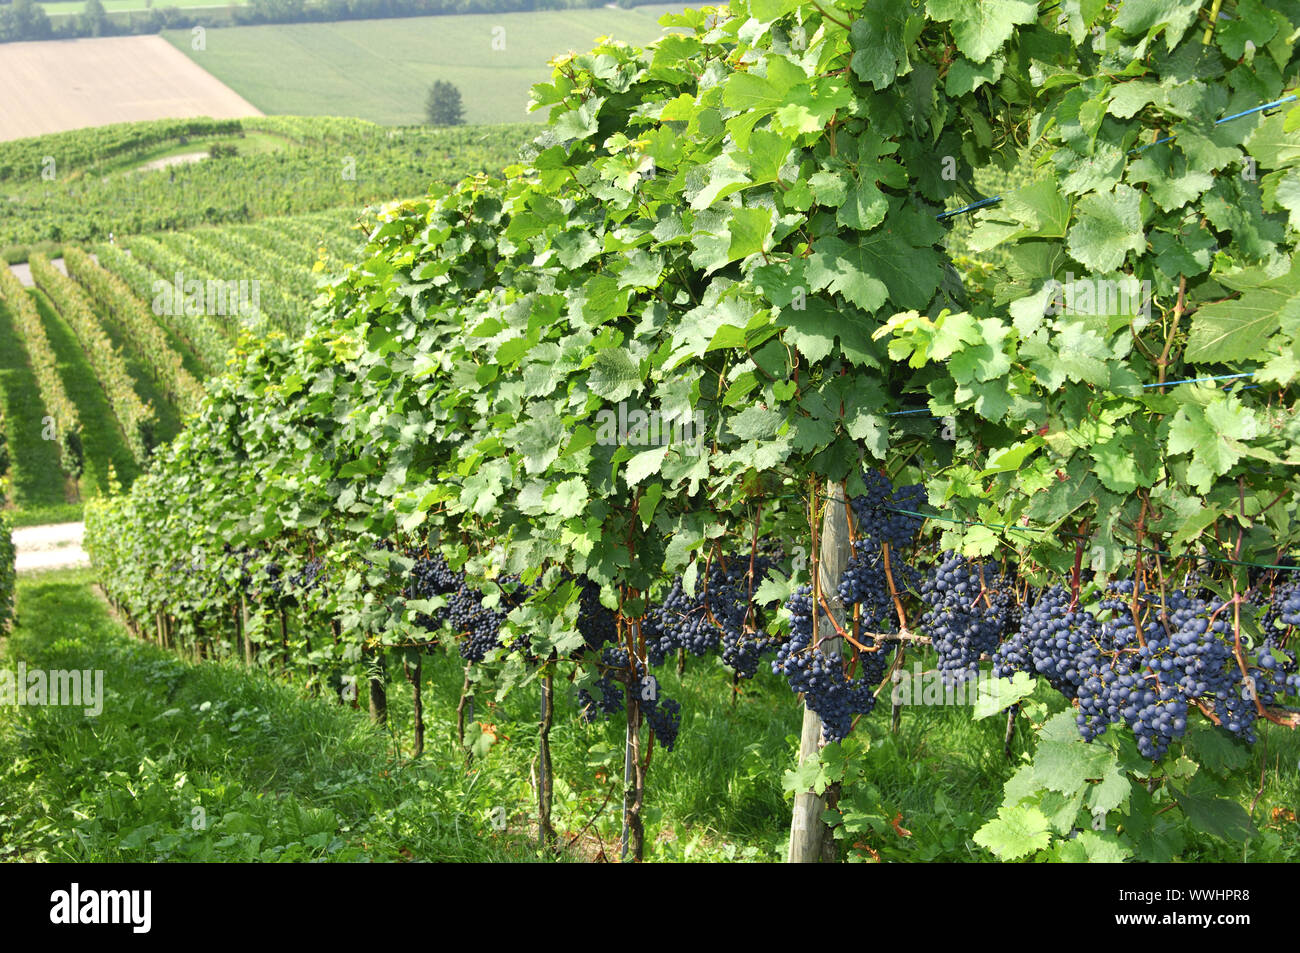 Vineyard with blue grapes, Switzerland Stock Photo